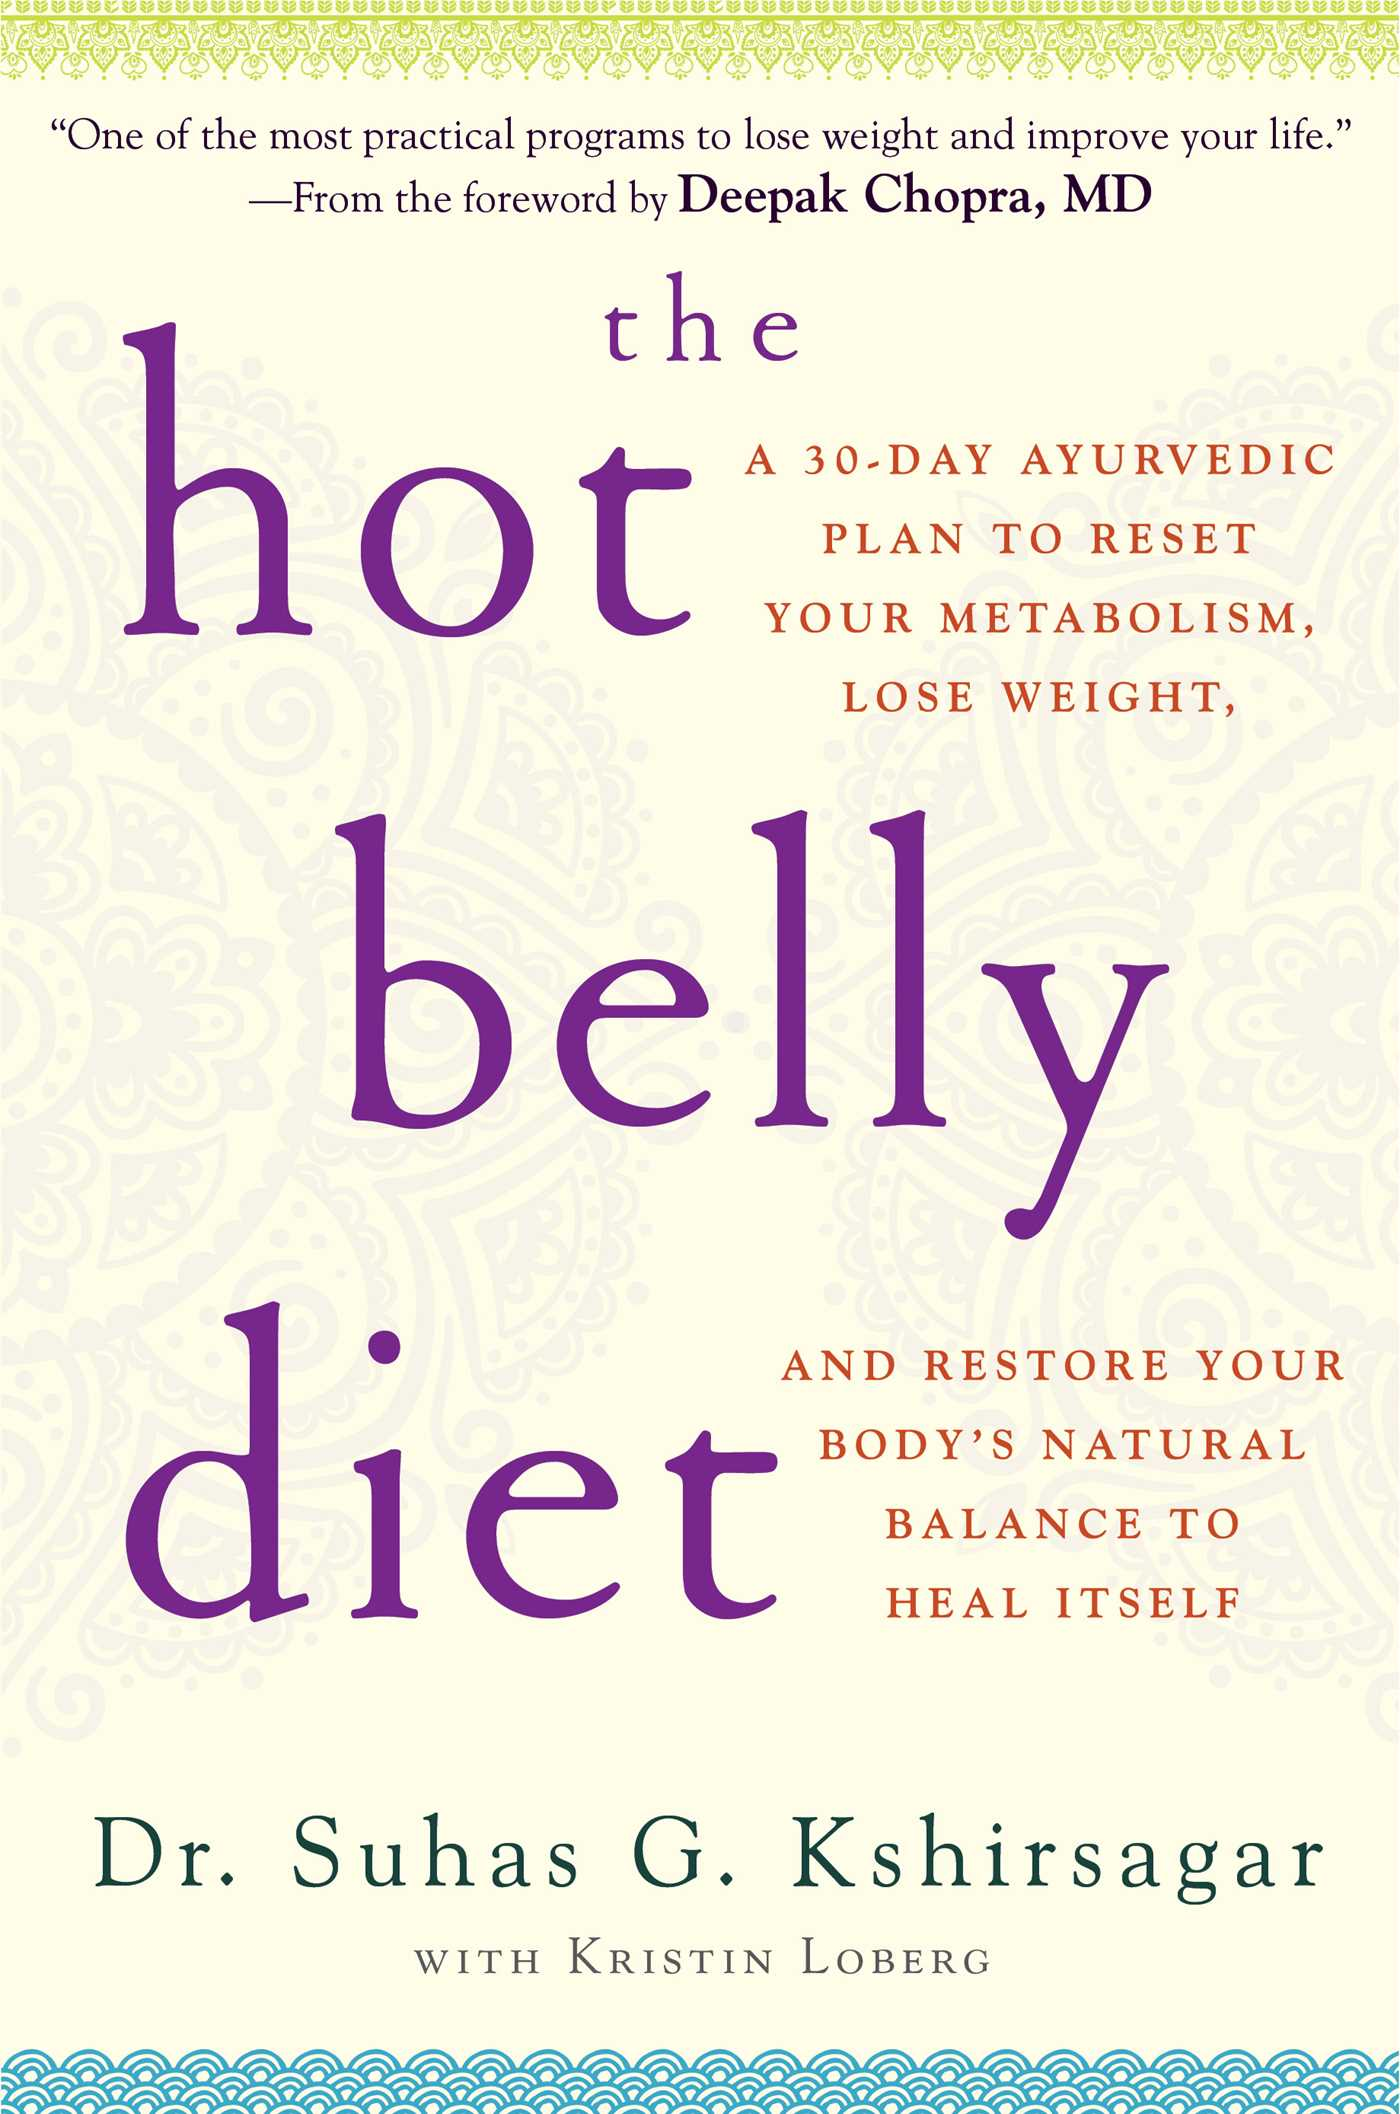 Hot-belly-diet-9781476734804_hr